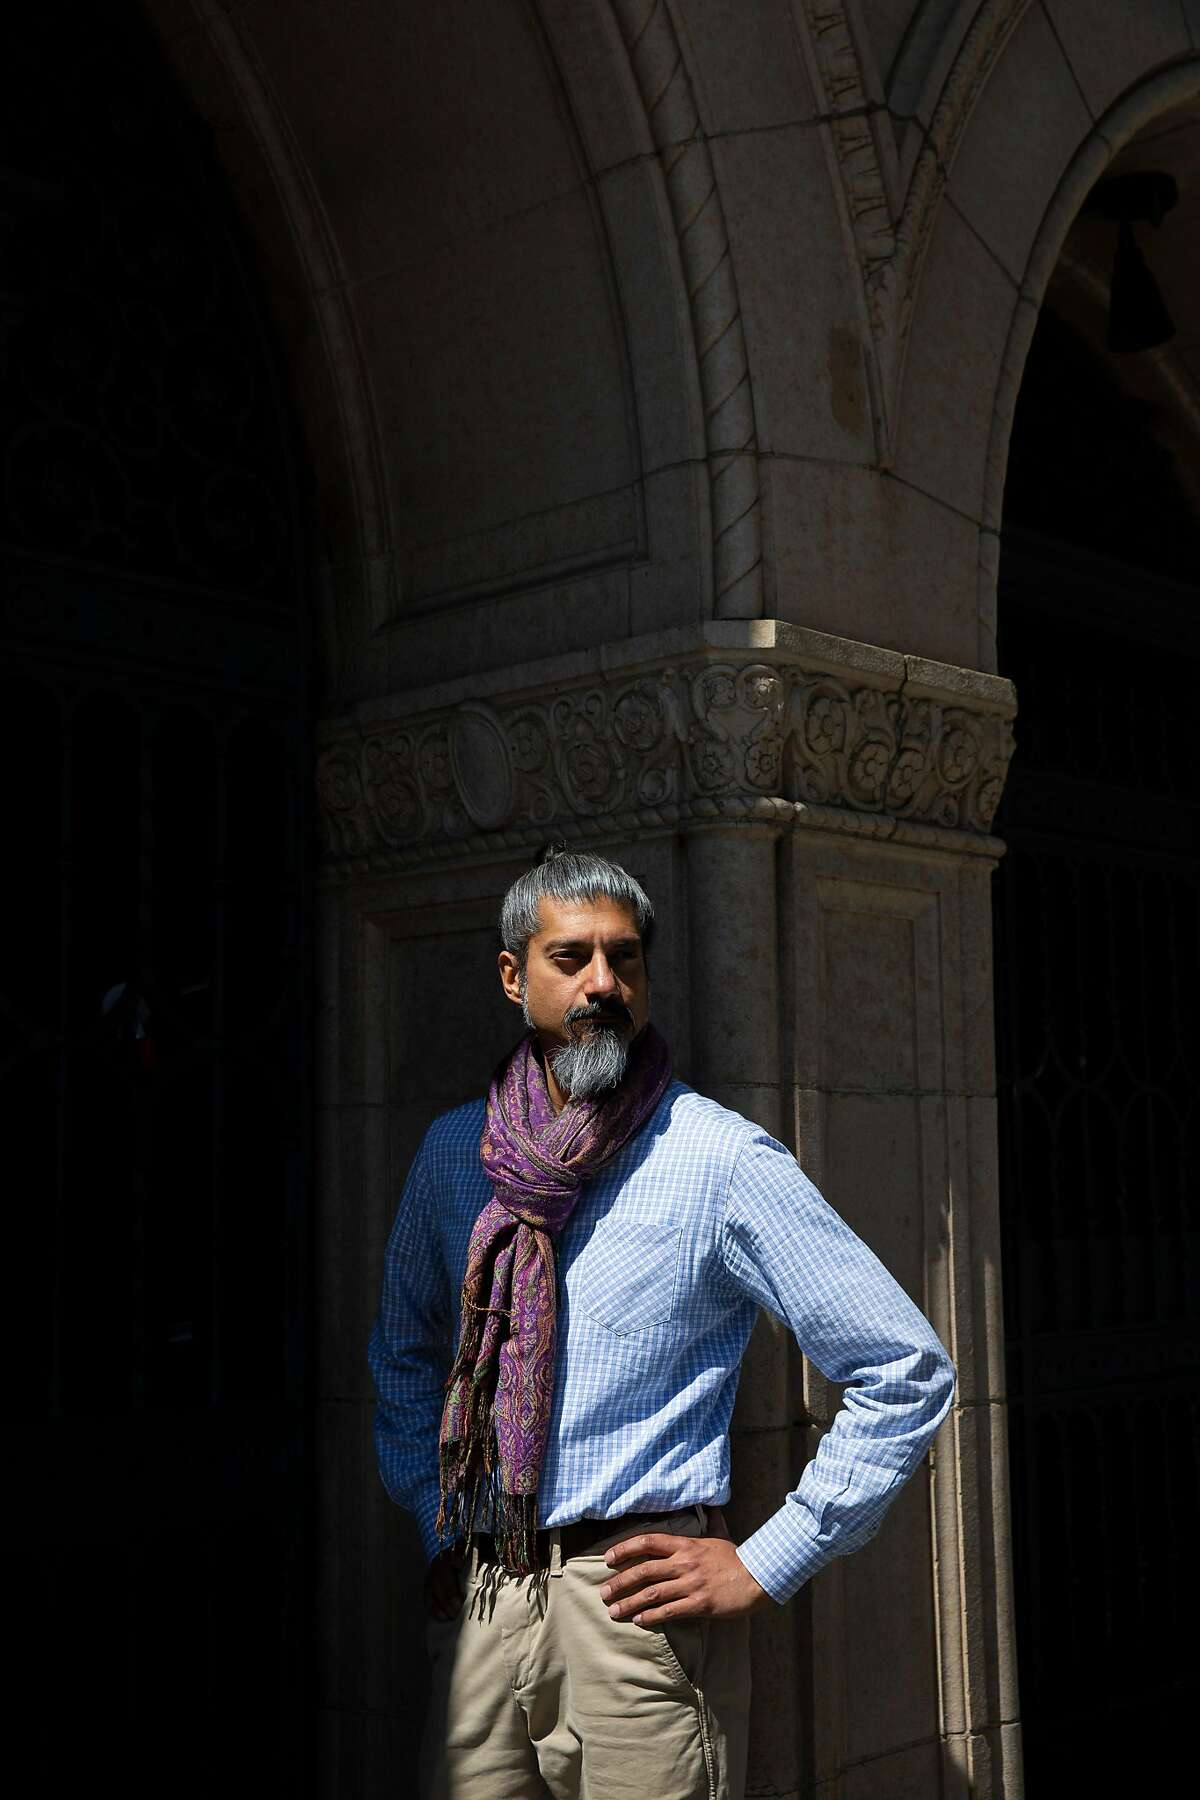 A portrait of Shahid Buttar on Wednesday, April 1, 2020, in San Francisco, Calif. Buttar is running for election to the U.S. House to represent California's 12th Congressional District.